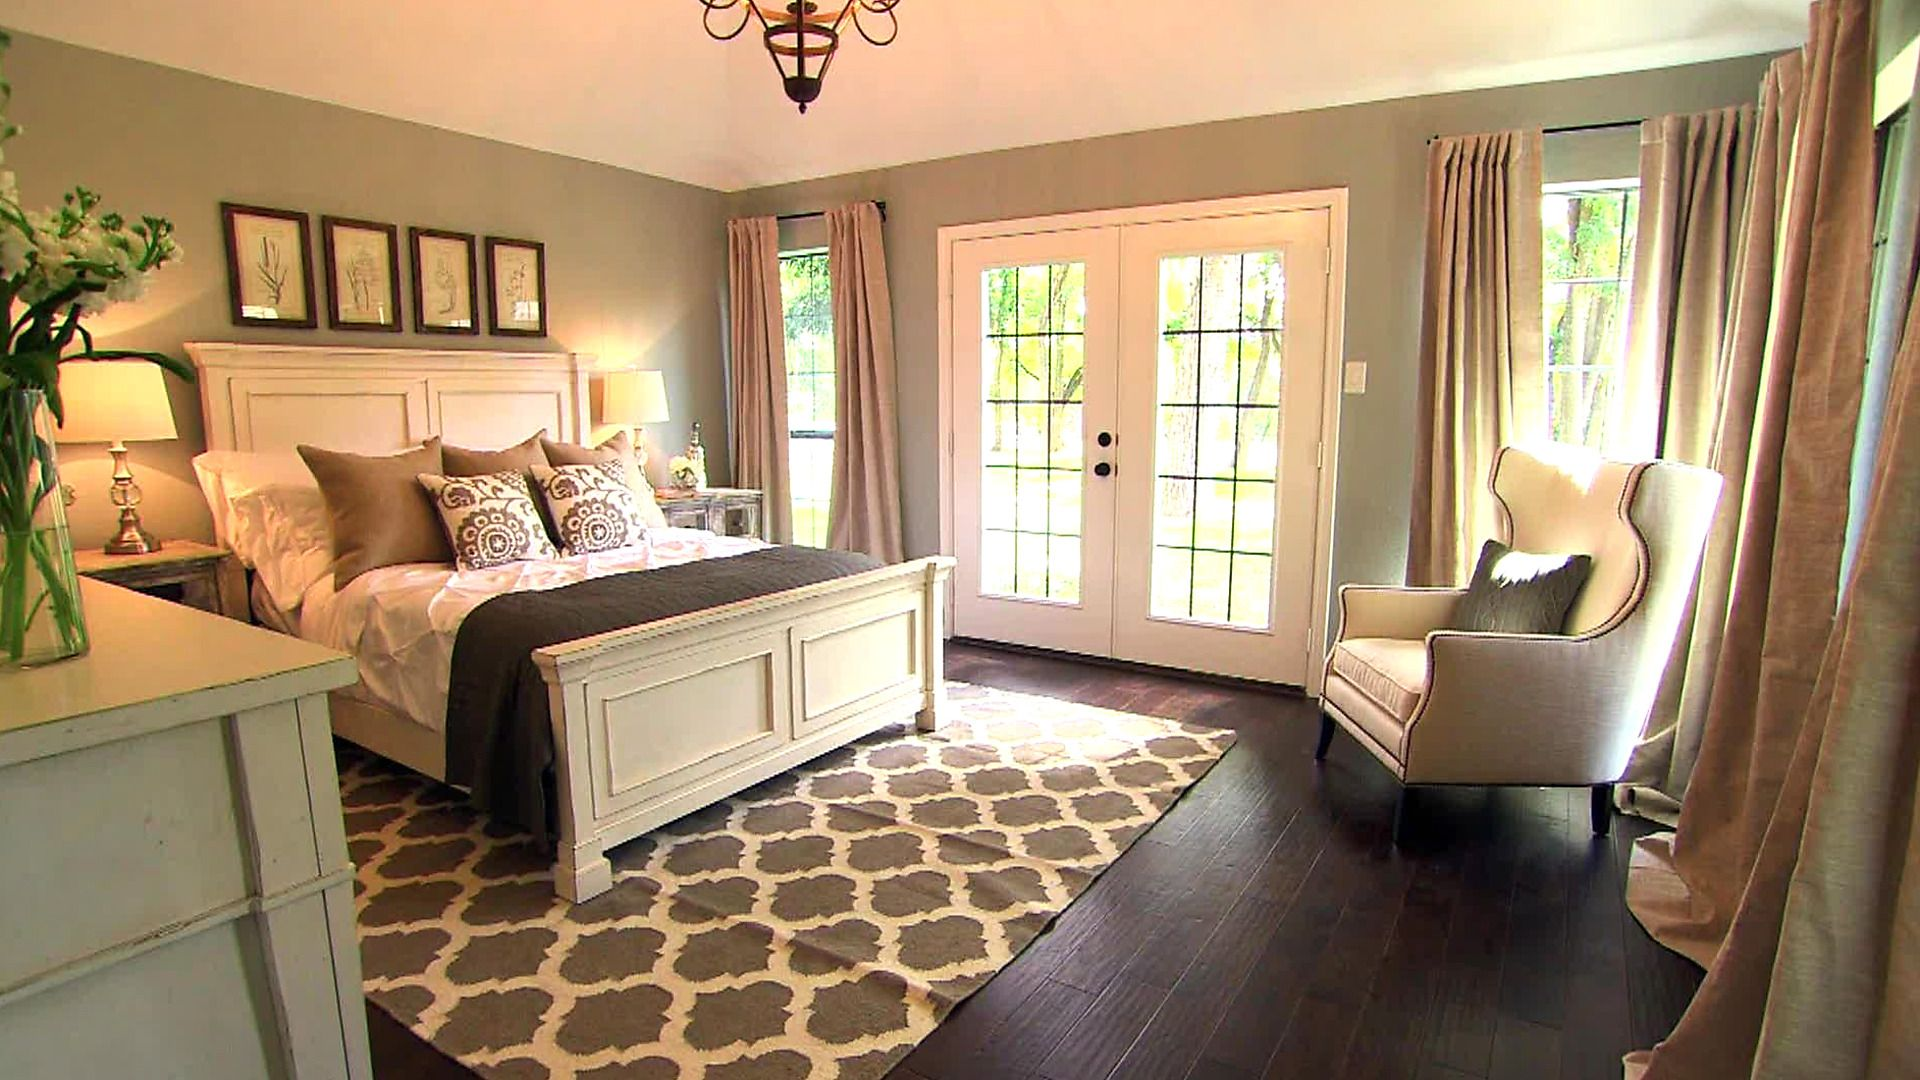 Old and new for indoor or outdoor design with fixer upper for Fixer upper bedroom designs